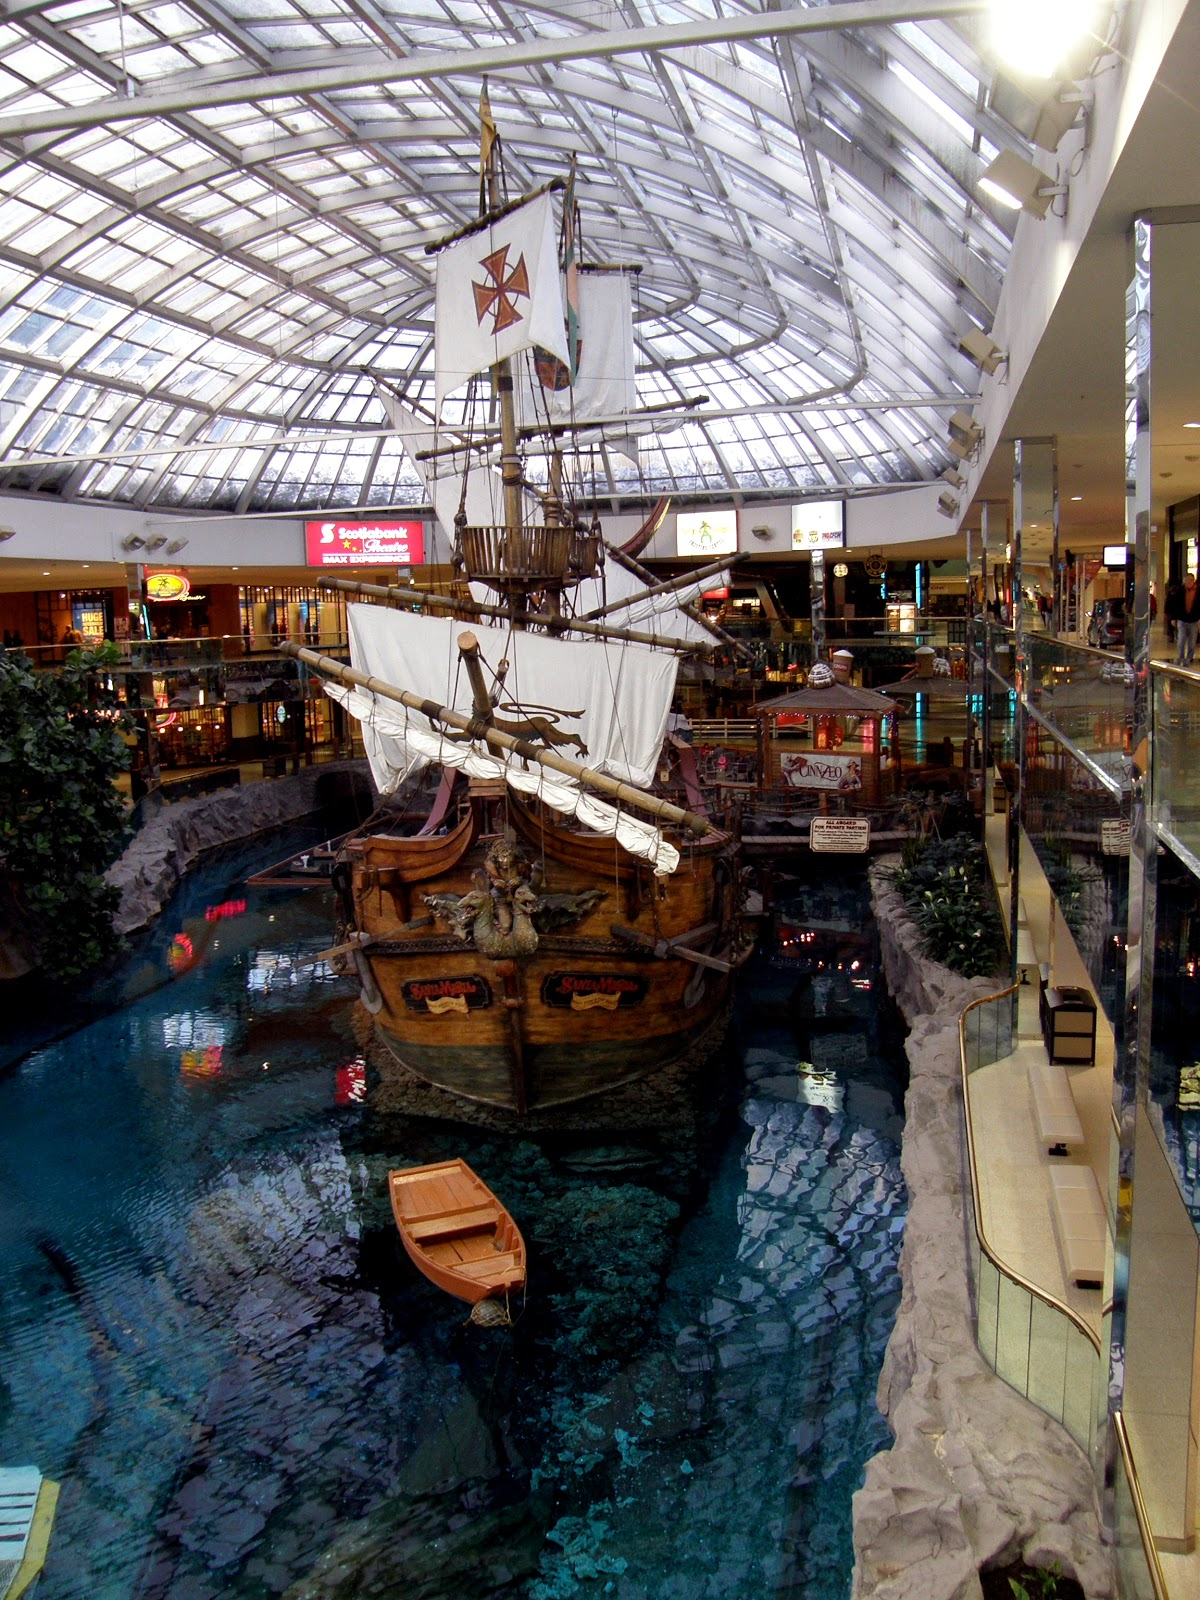 Edmonton: Sibu Pegasus Power: My Town Monday: West Edmonton Mall